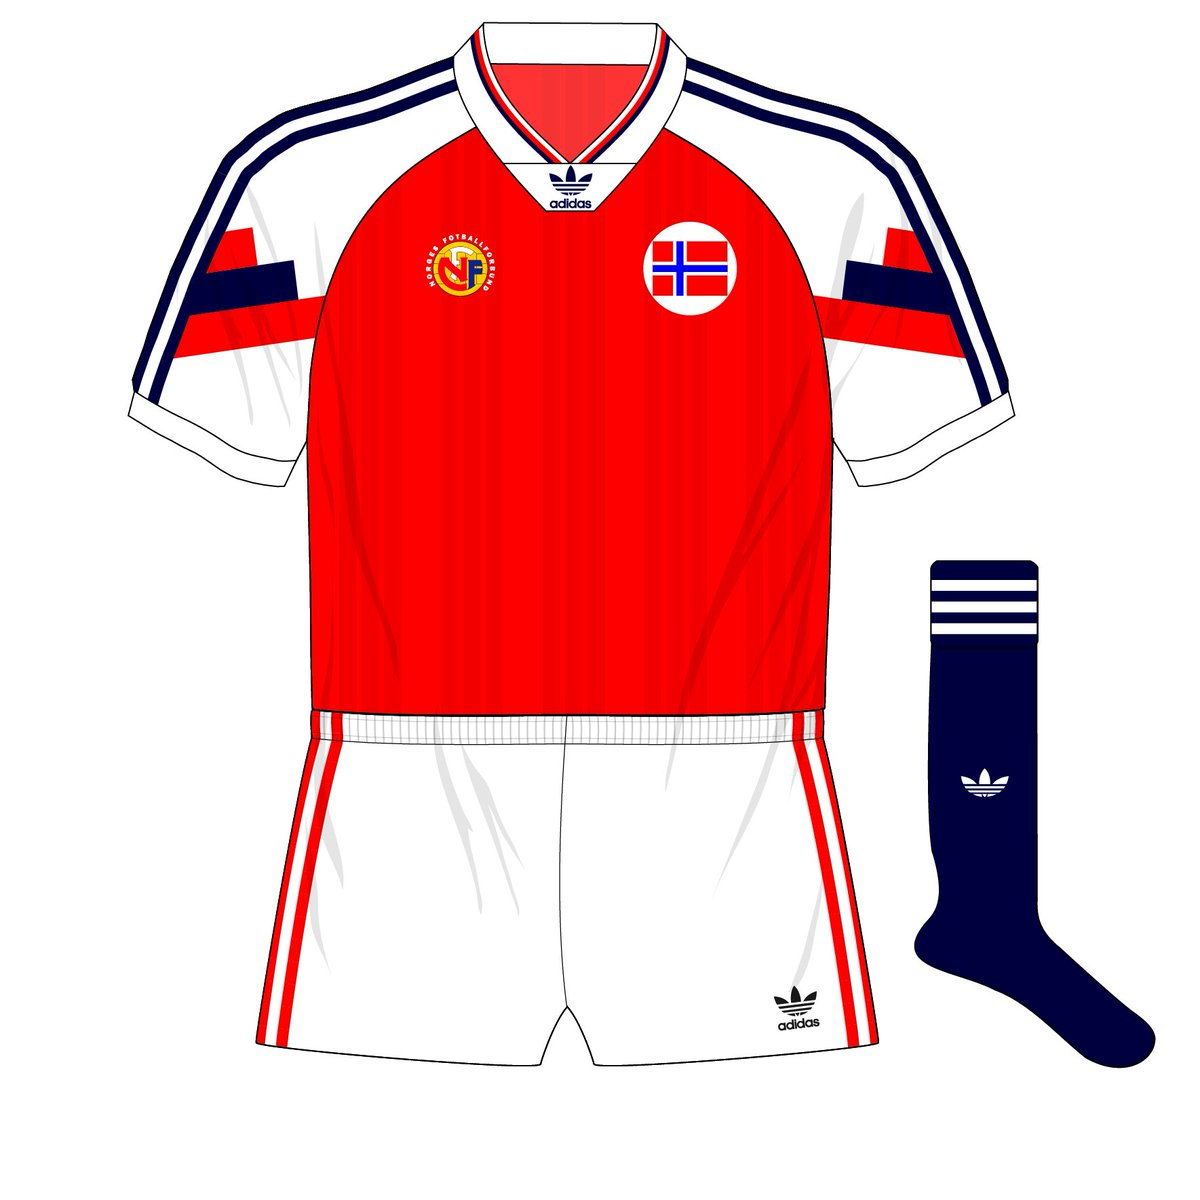 57d6820940a Another kit from the adidas Equipment design era but with a trefoil logo -  Norway 1992-94